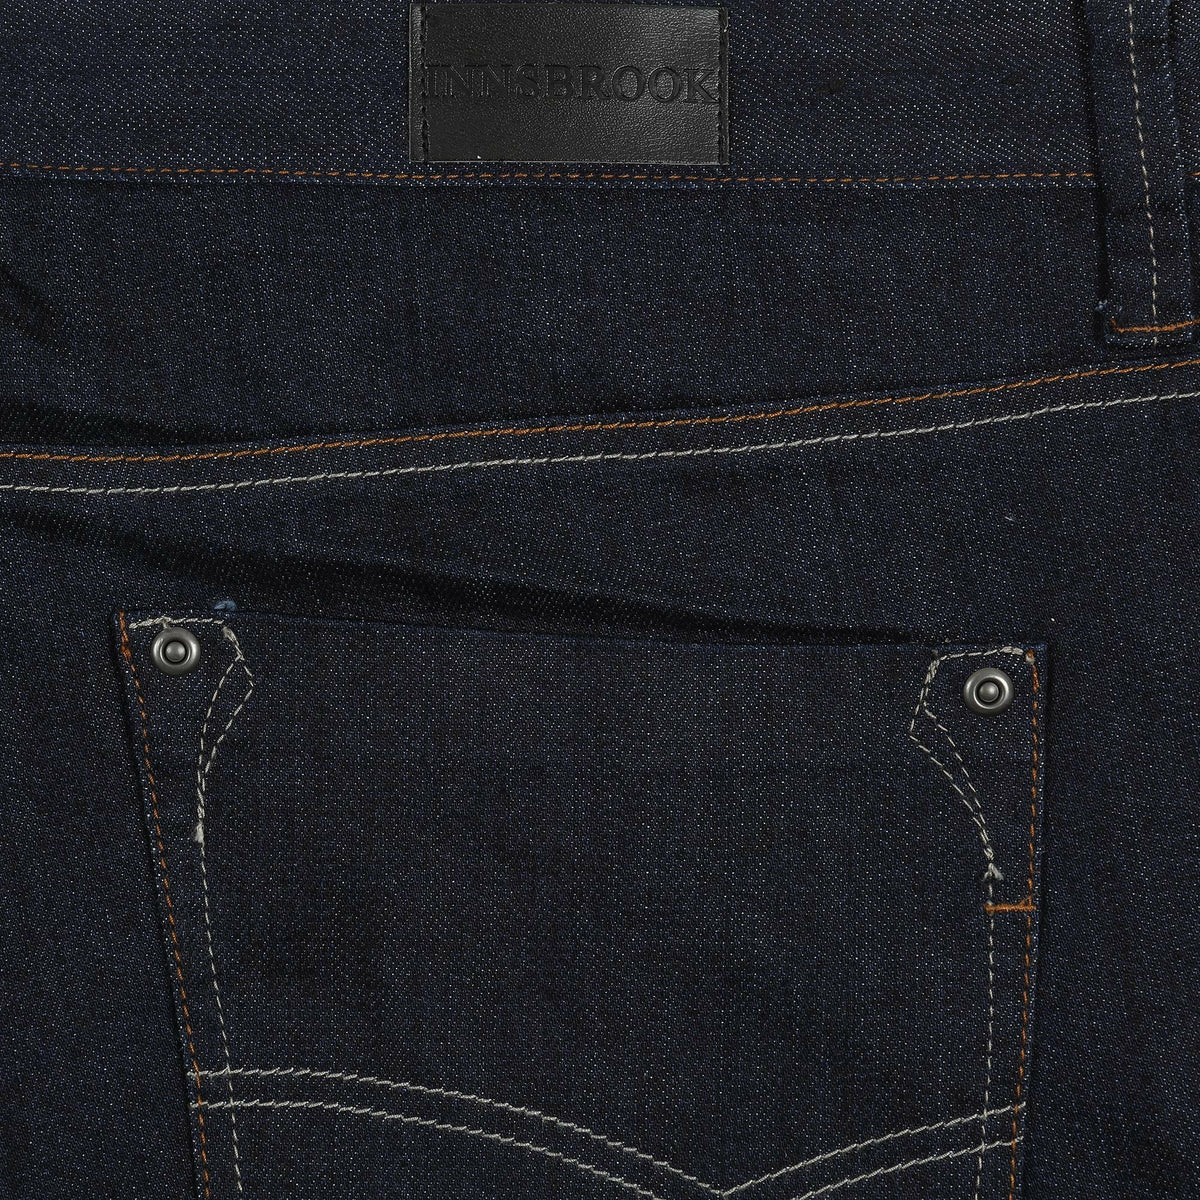 Innsbrook Stretch Jeans in Navy - Ron Bennett Big Men's Clothing - 4